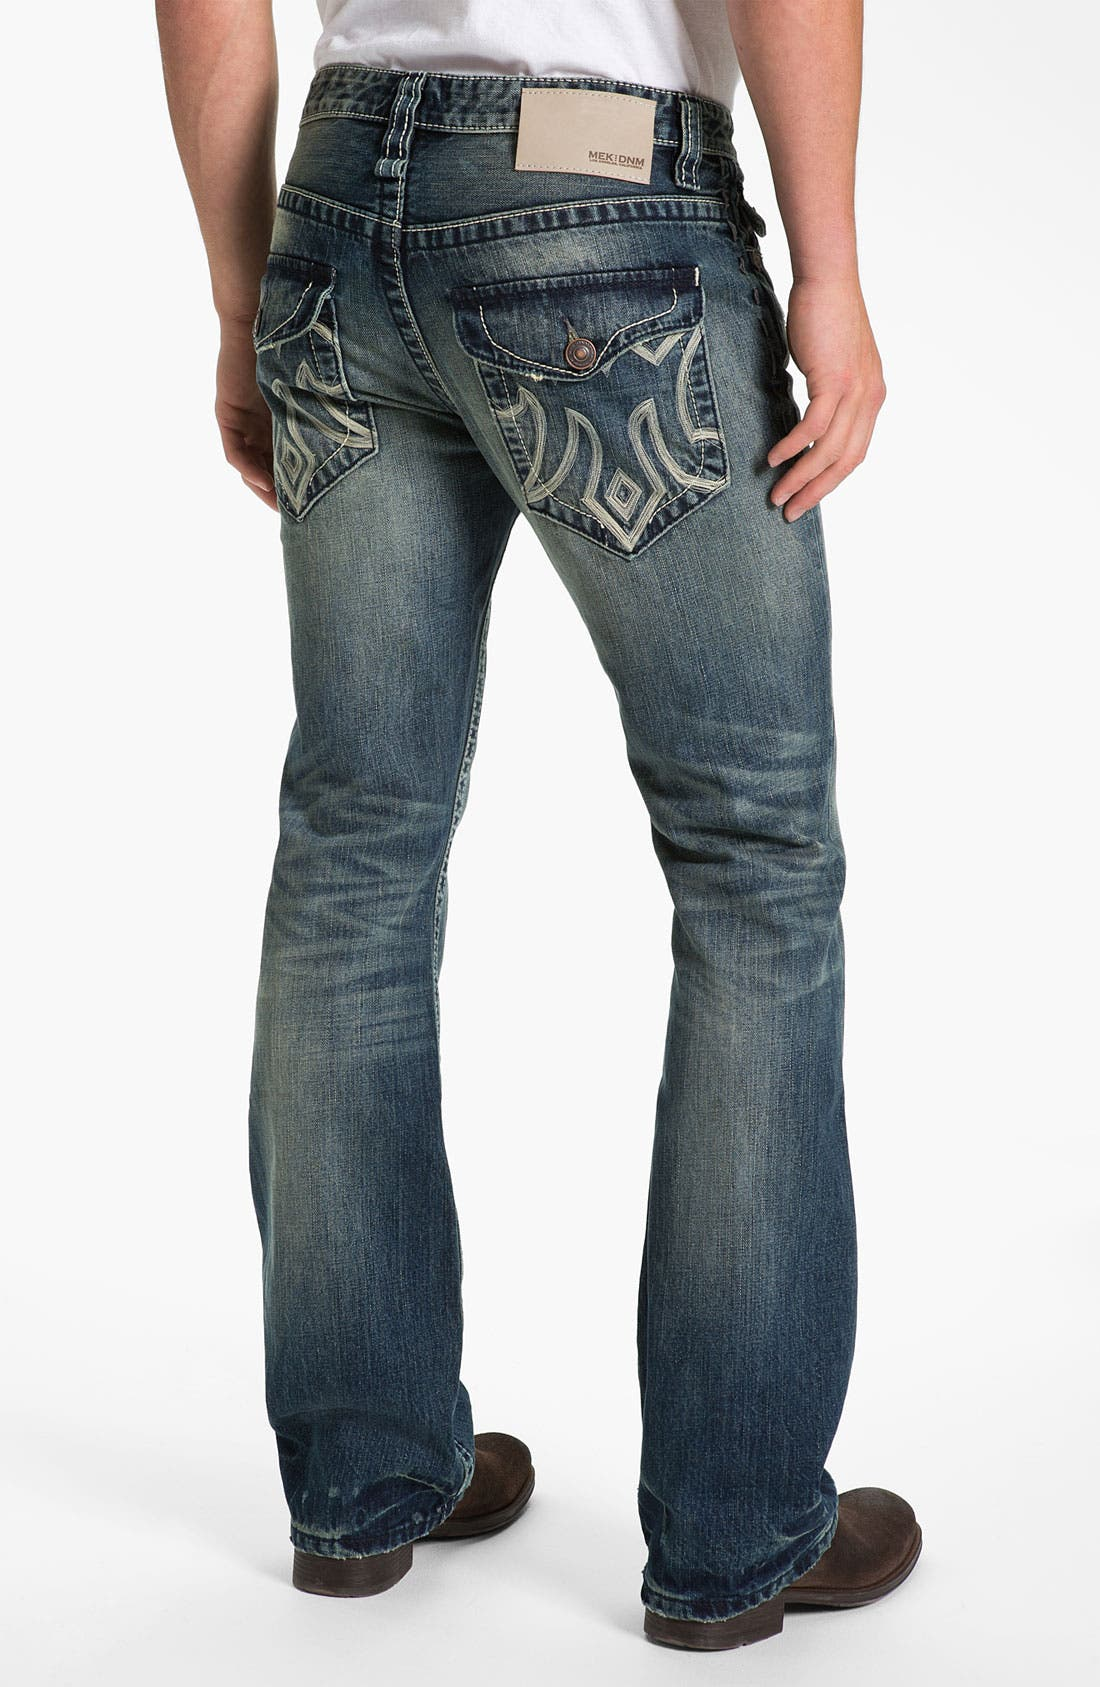 Main Image - MEK Denim 'Oaxaca' Slim Bootcut Jeans (Medium Blue)